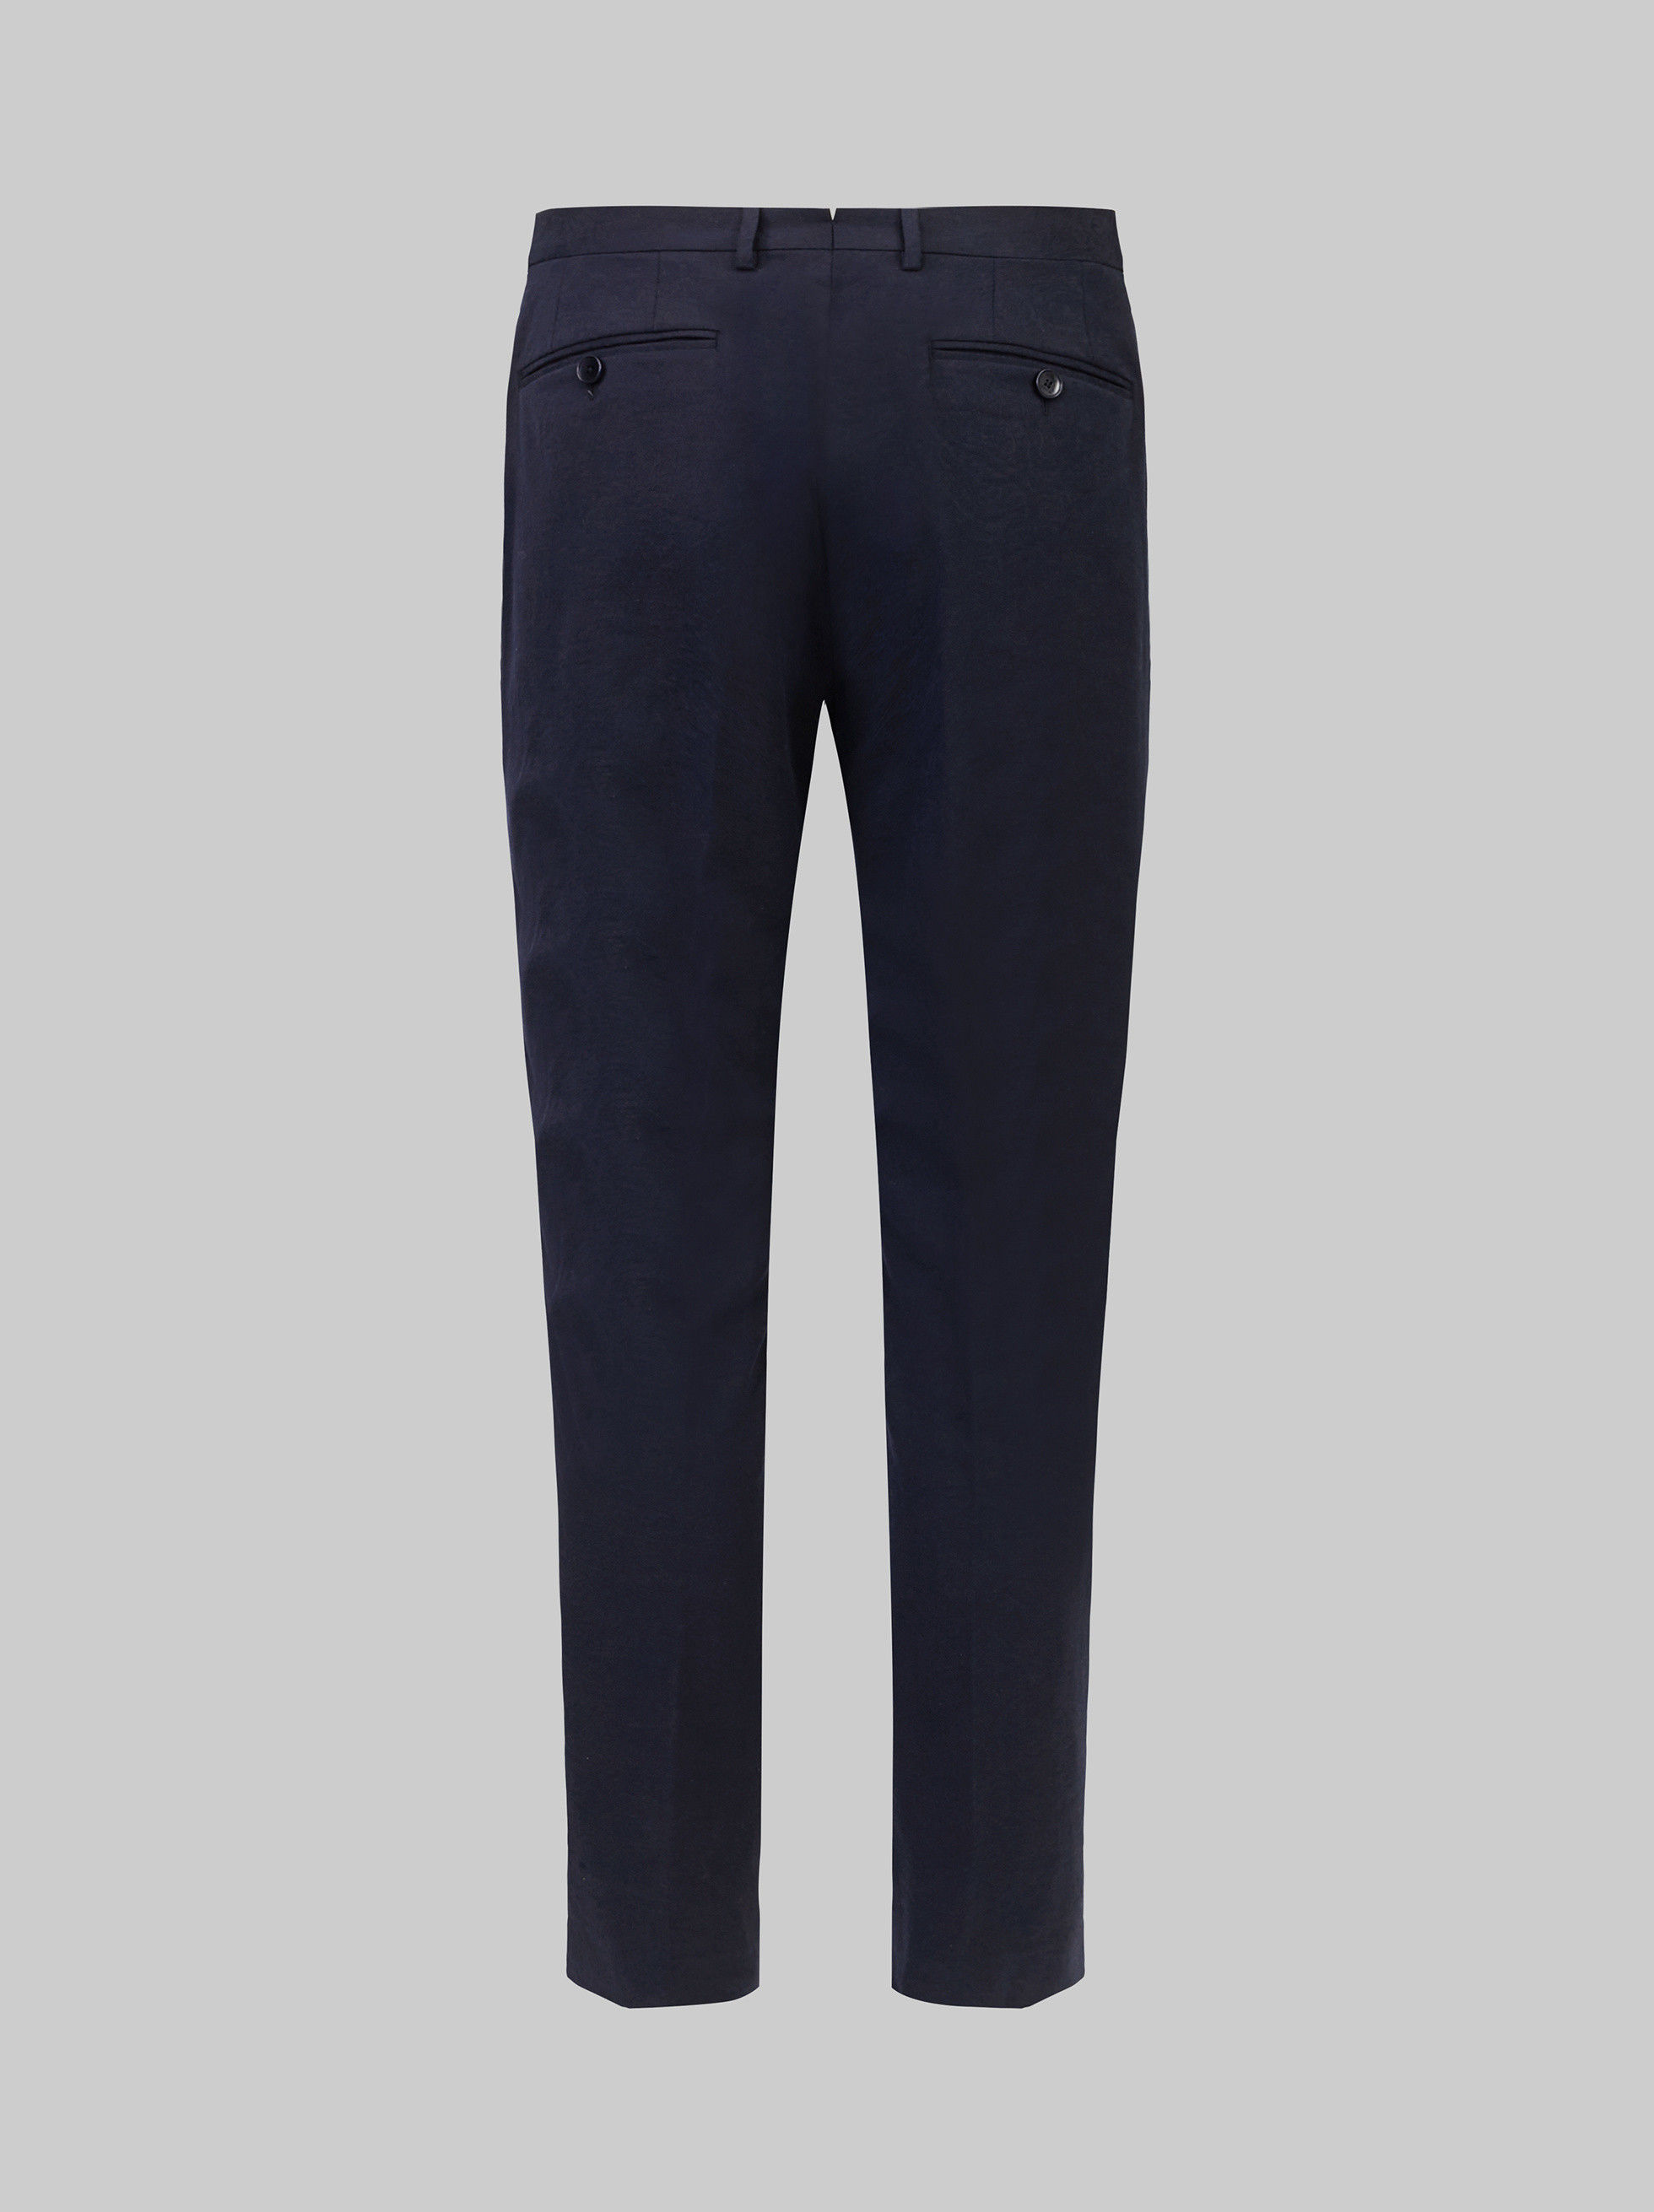 PAISLEY JACQUARD TAILORED TROUSERS